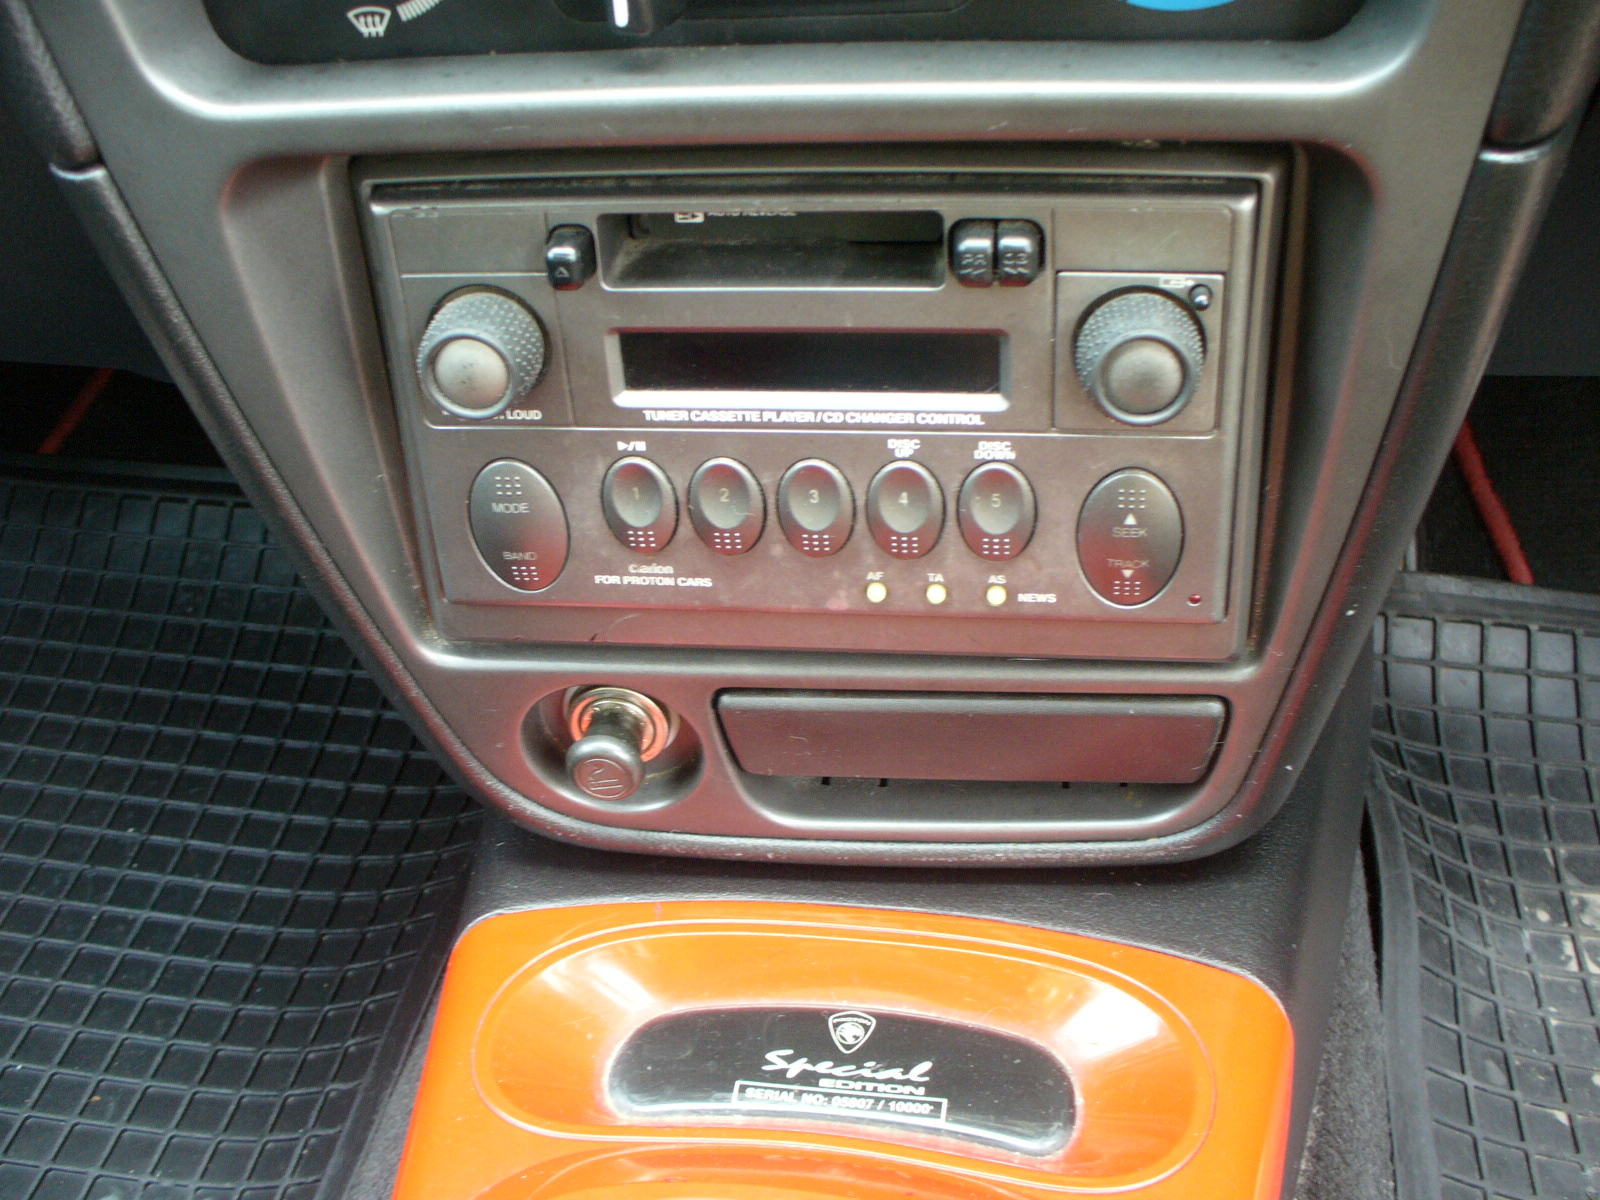 proton wira special edition 1.5 manual 2004 1 interior radio lyn proton wira club (lyn pwc) v xxviii wira fuse box diagram at mifinder.co